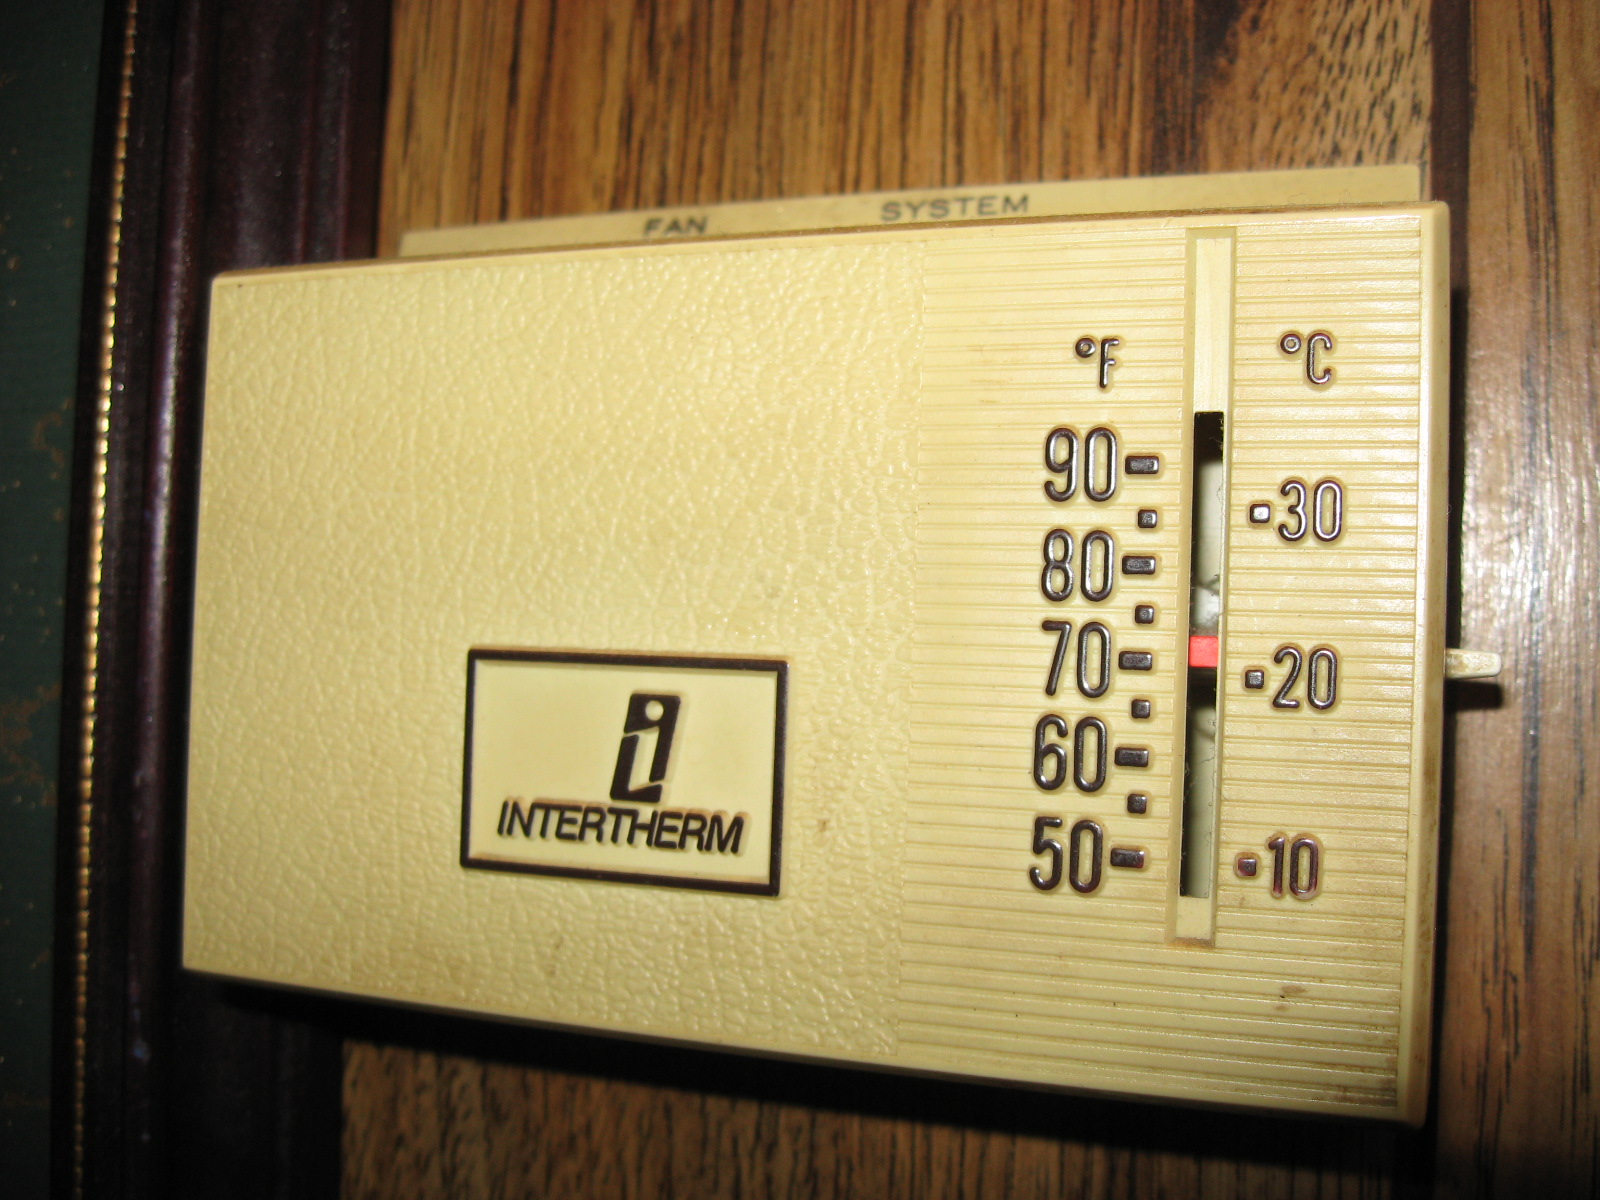 hight resolution of file intertherm mechanical thermostat jpg wikimedia commons rh commons wikimedia org 4 wire intertherm thermostat wiring